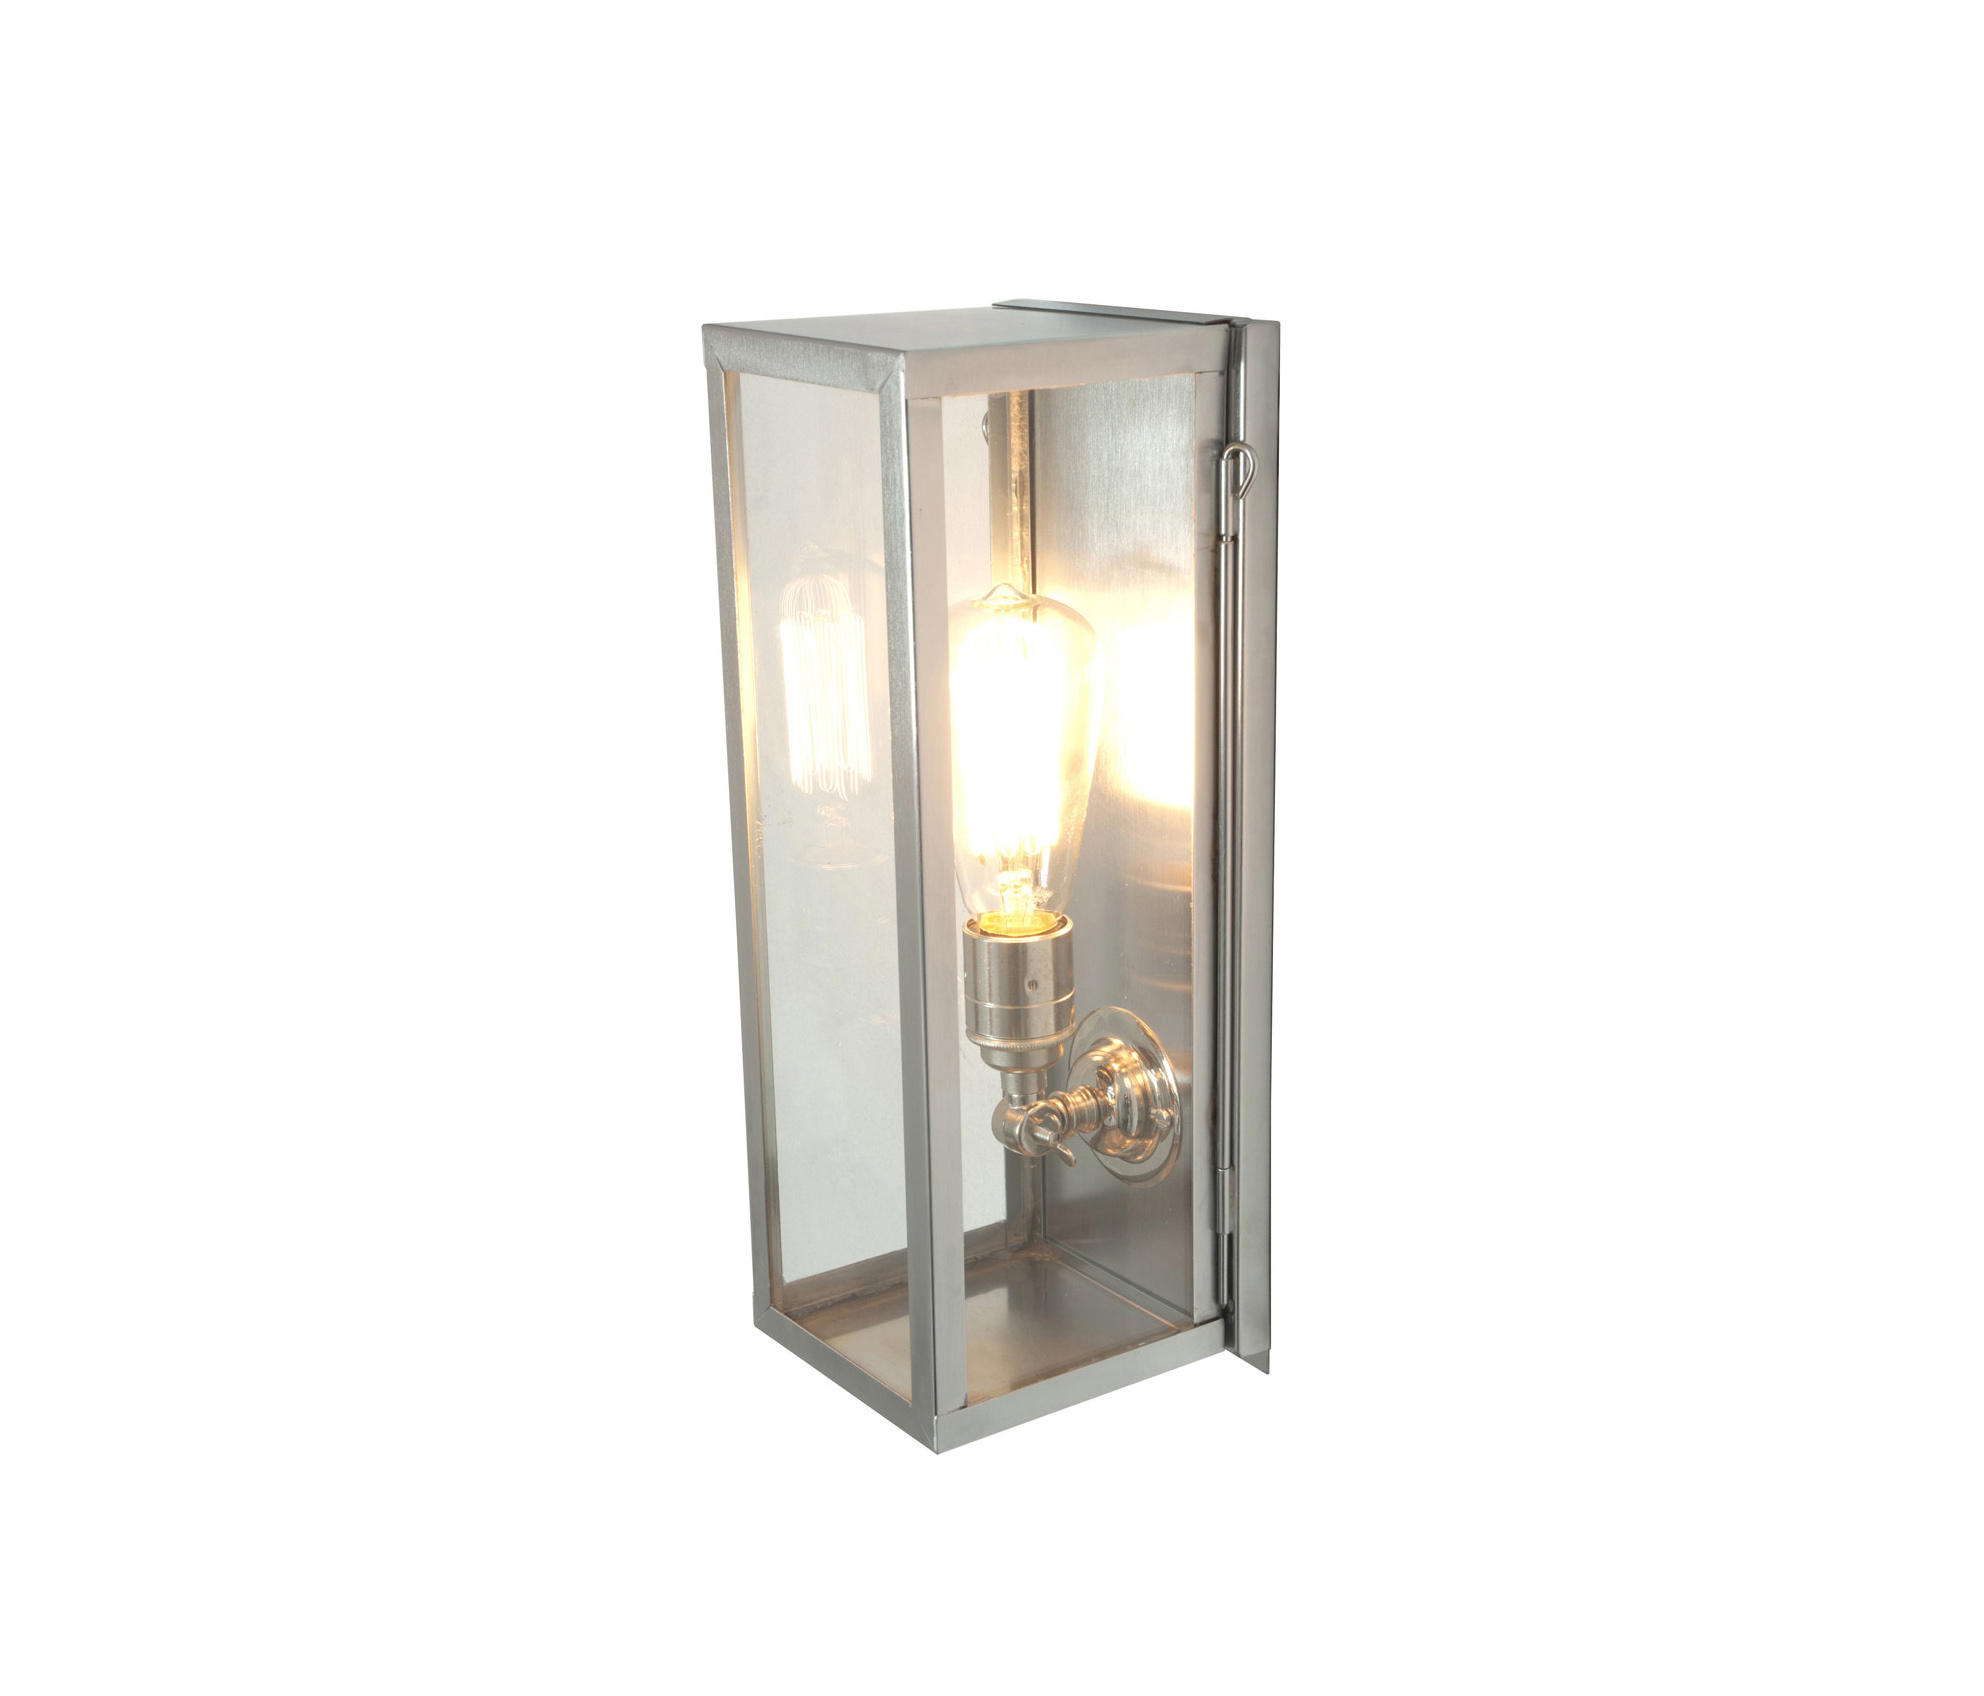 Glass Box Wall Lights : 7650 NARROW BOX WALL LIGHT, INTERNAL GLASS, POLISHED NICKEL, CLEAR GLASS - General lighting from..